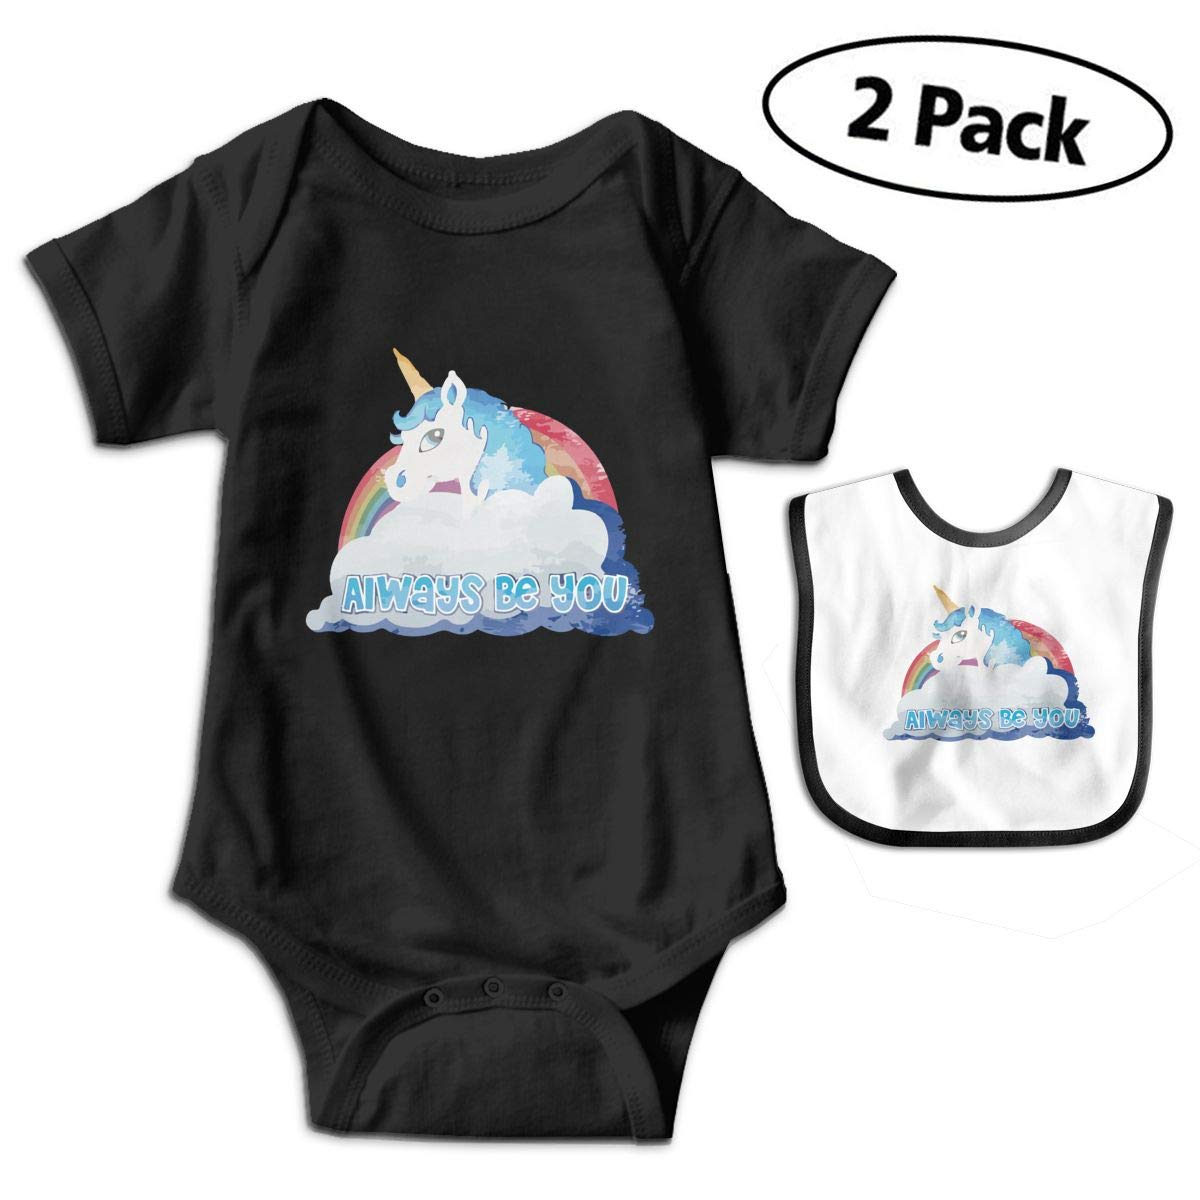 Faded Central Intelligence Unicorn Infant Baby Short Sleeve Romper Jumpsuit Bodysuit